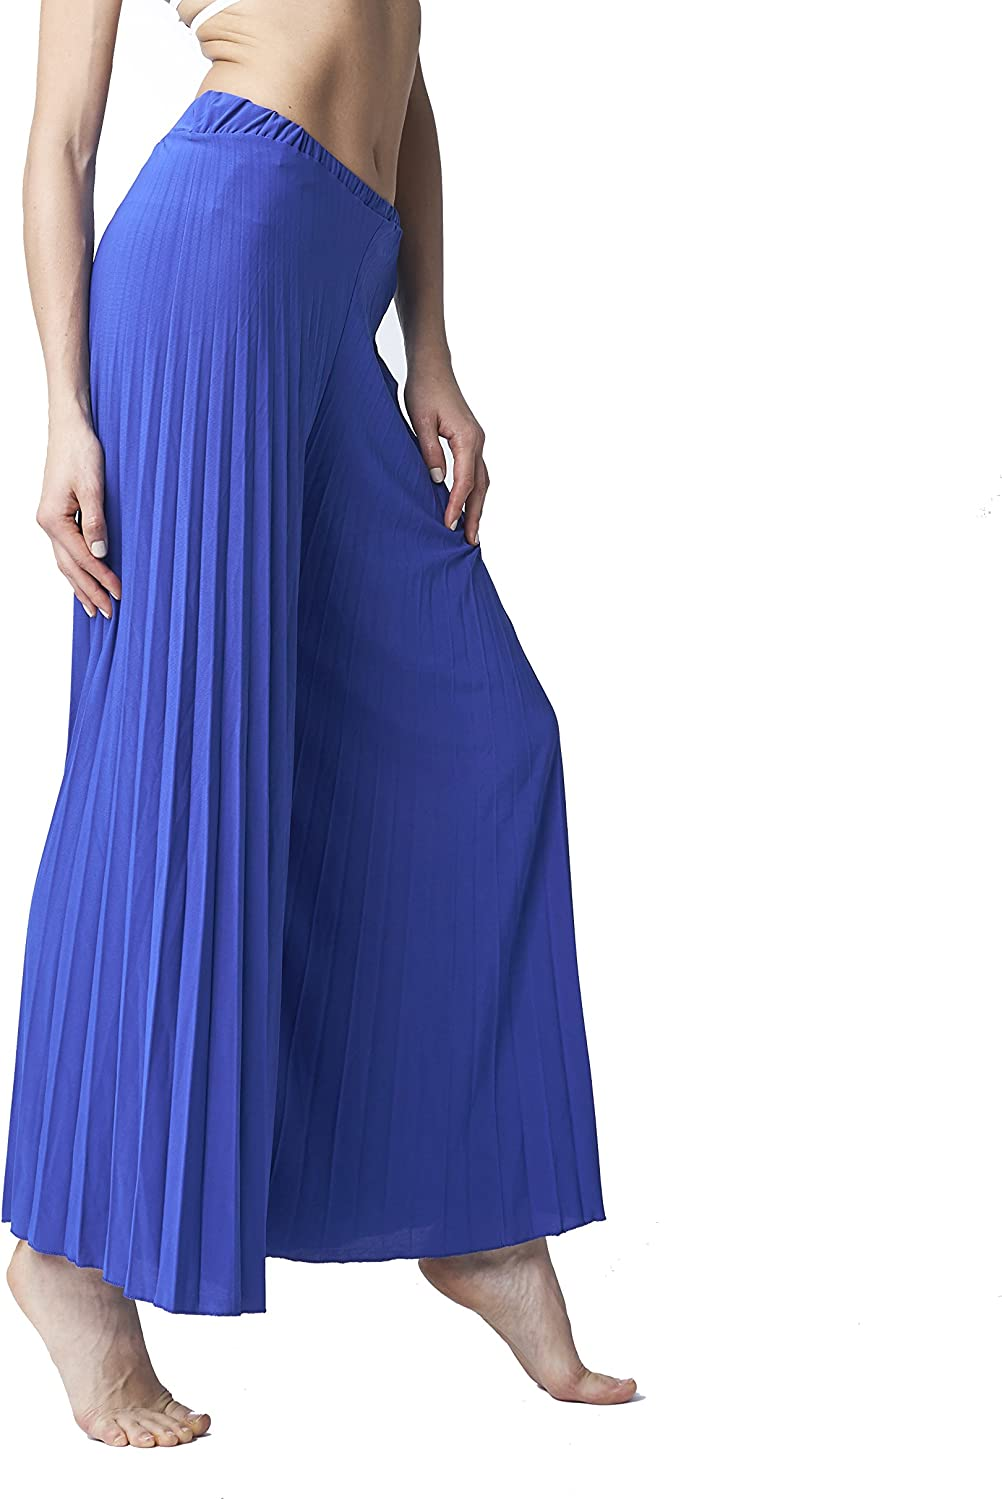 Flexi FASH Pretty Please Pleated Palazzo